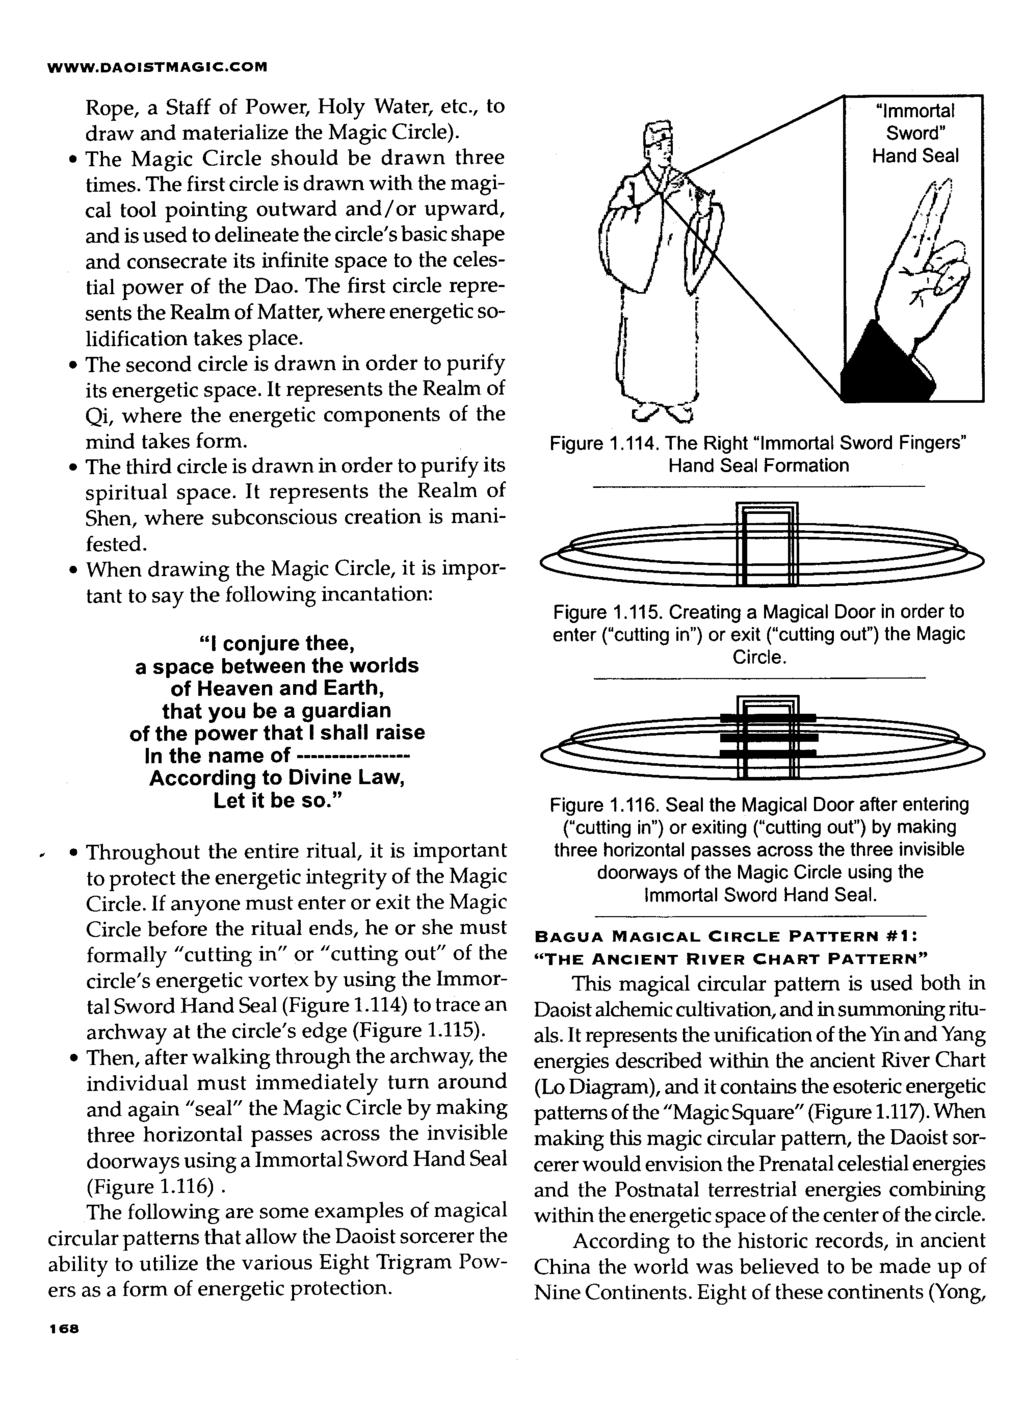 WWW.DAOISTMAGIC.COM Rope, a Staff of Power, Holy Water, etc., to draw and materialize the Magic Circle). The Magic Circle should be drawn three times.